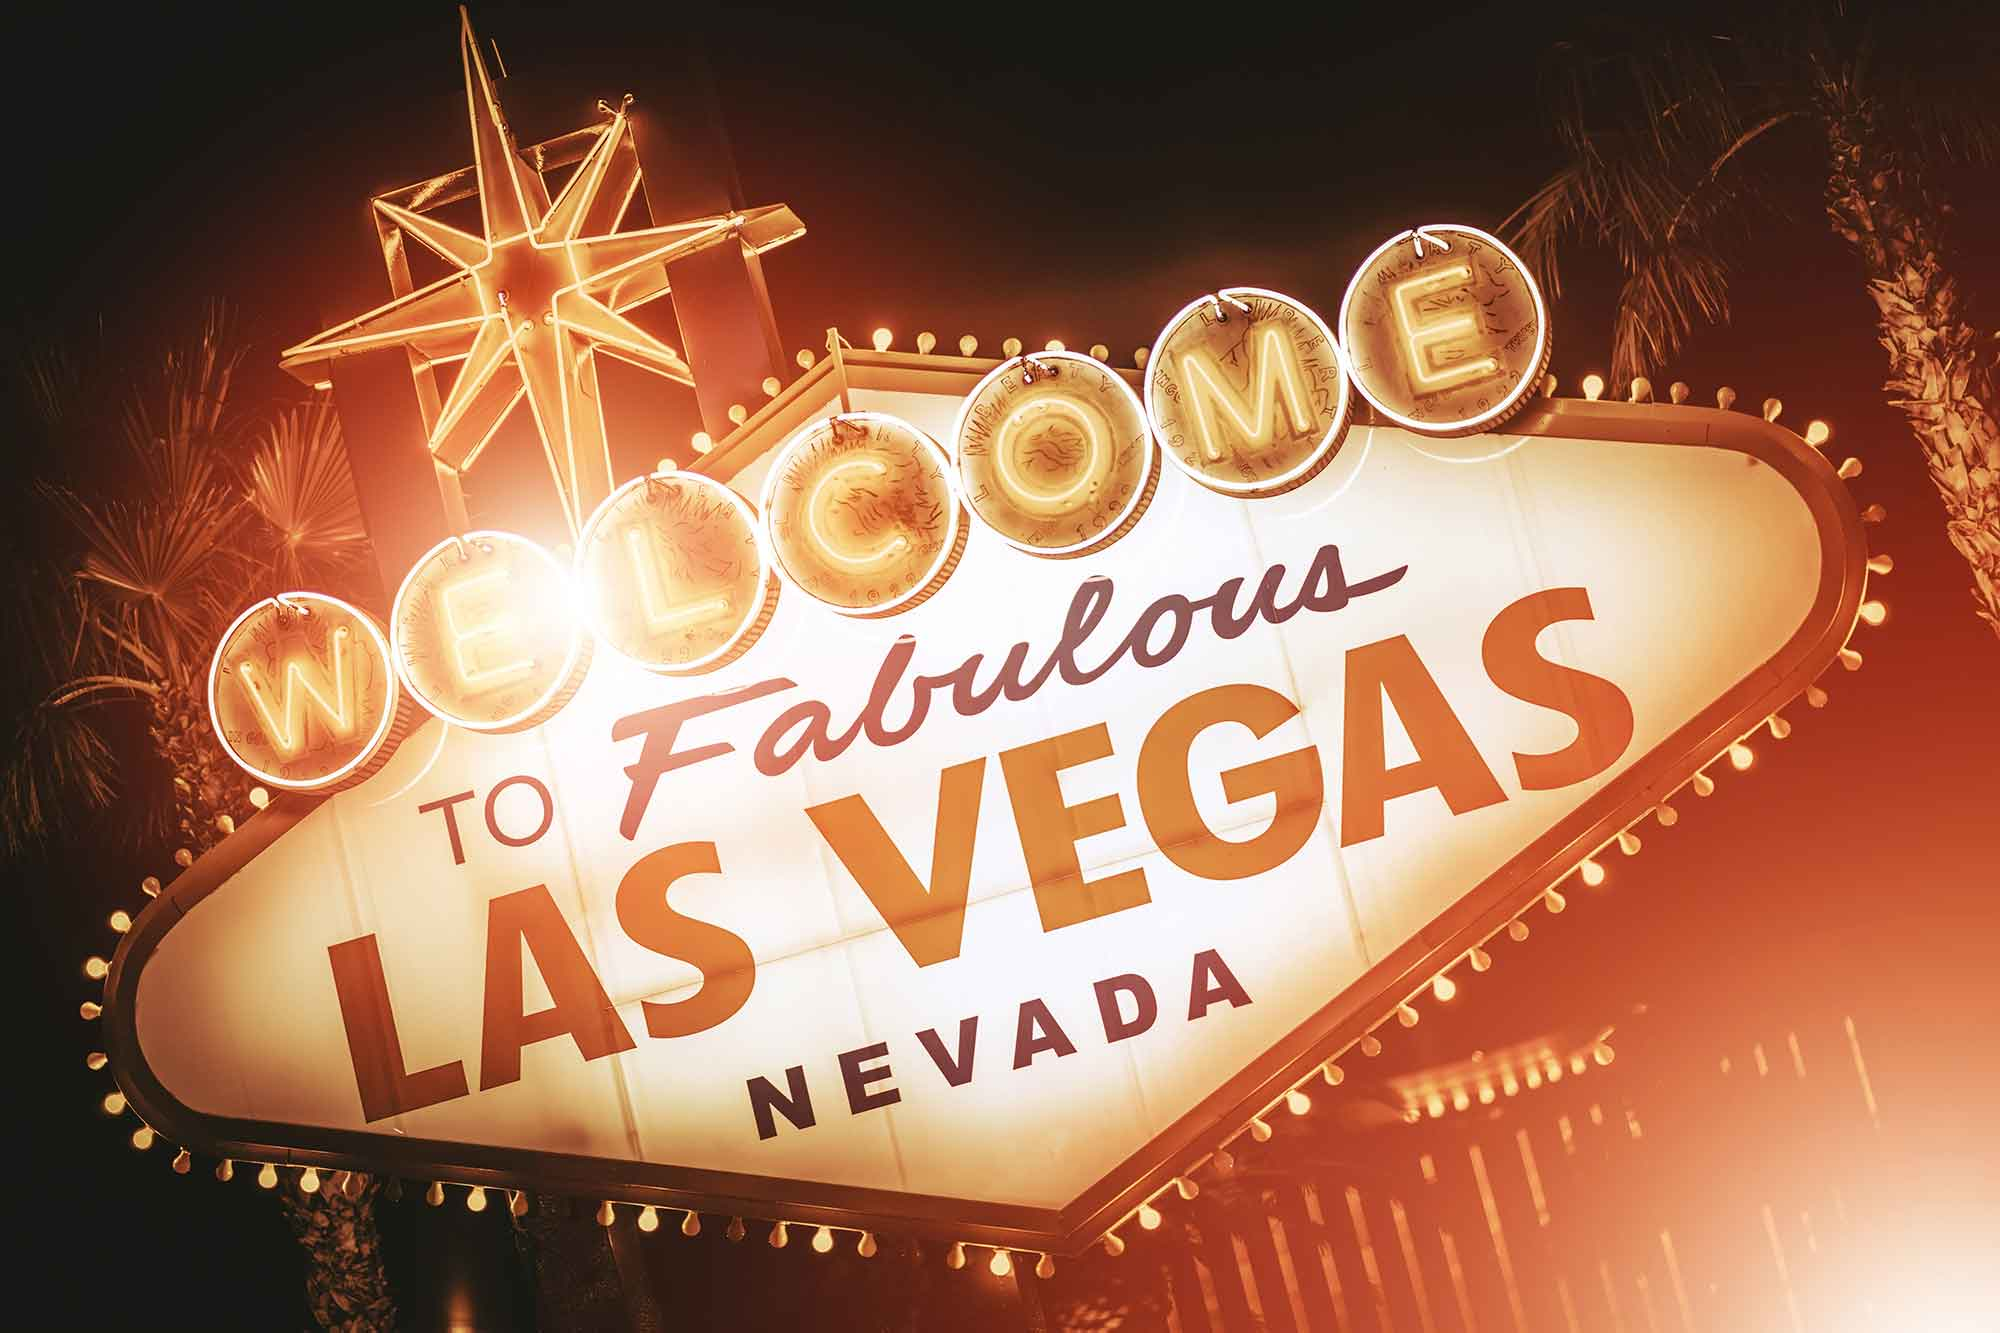 A picture of the welcome to Las Vegas sign.